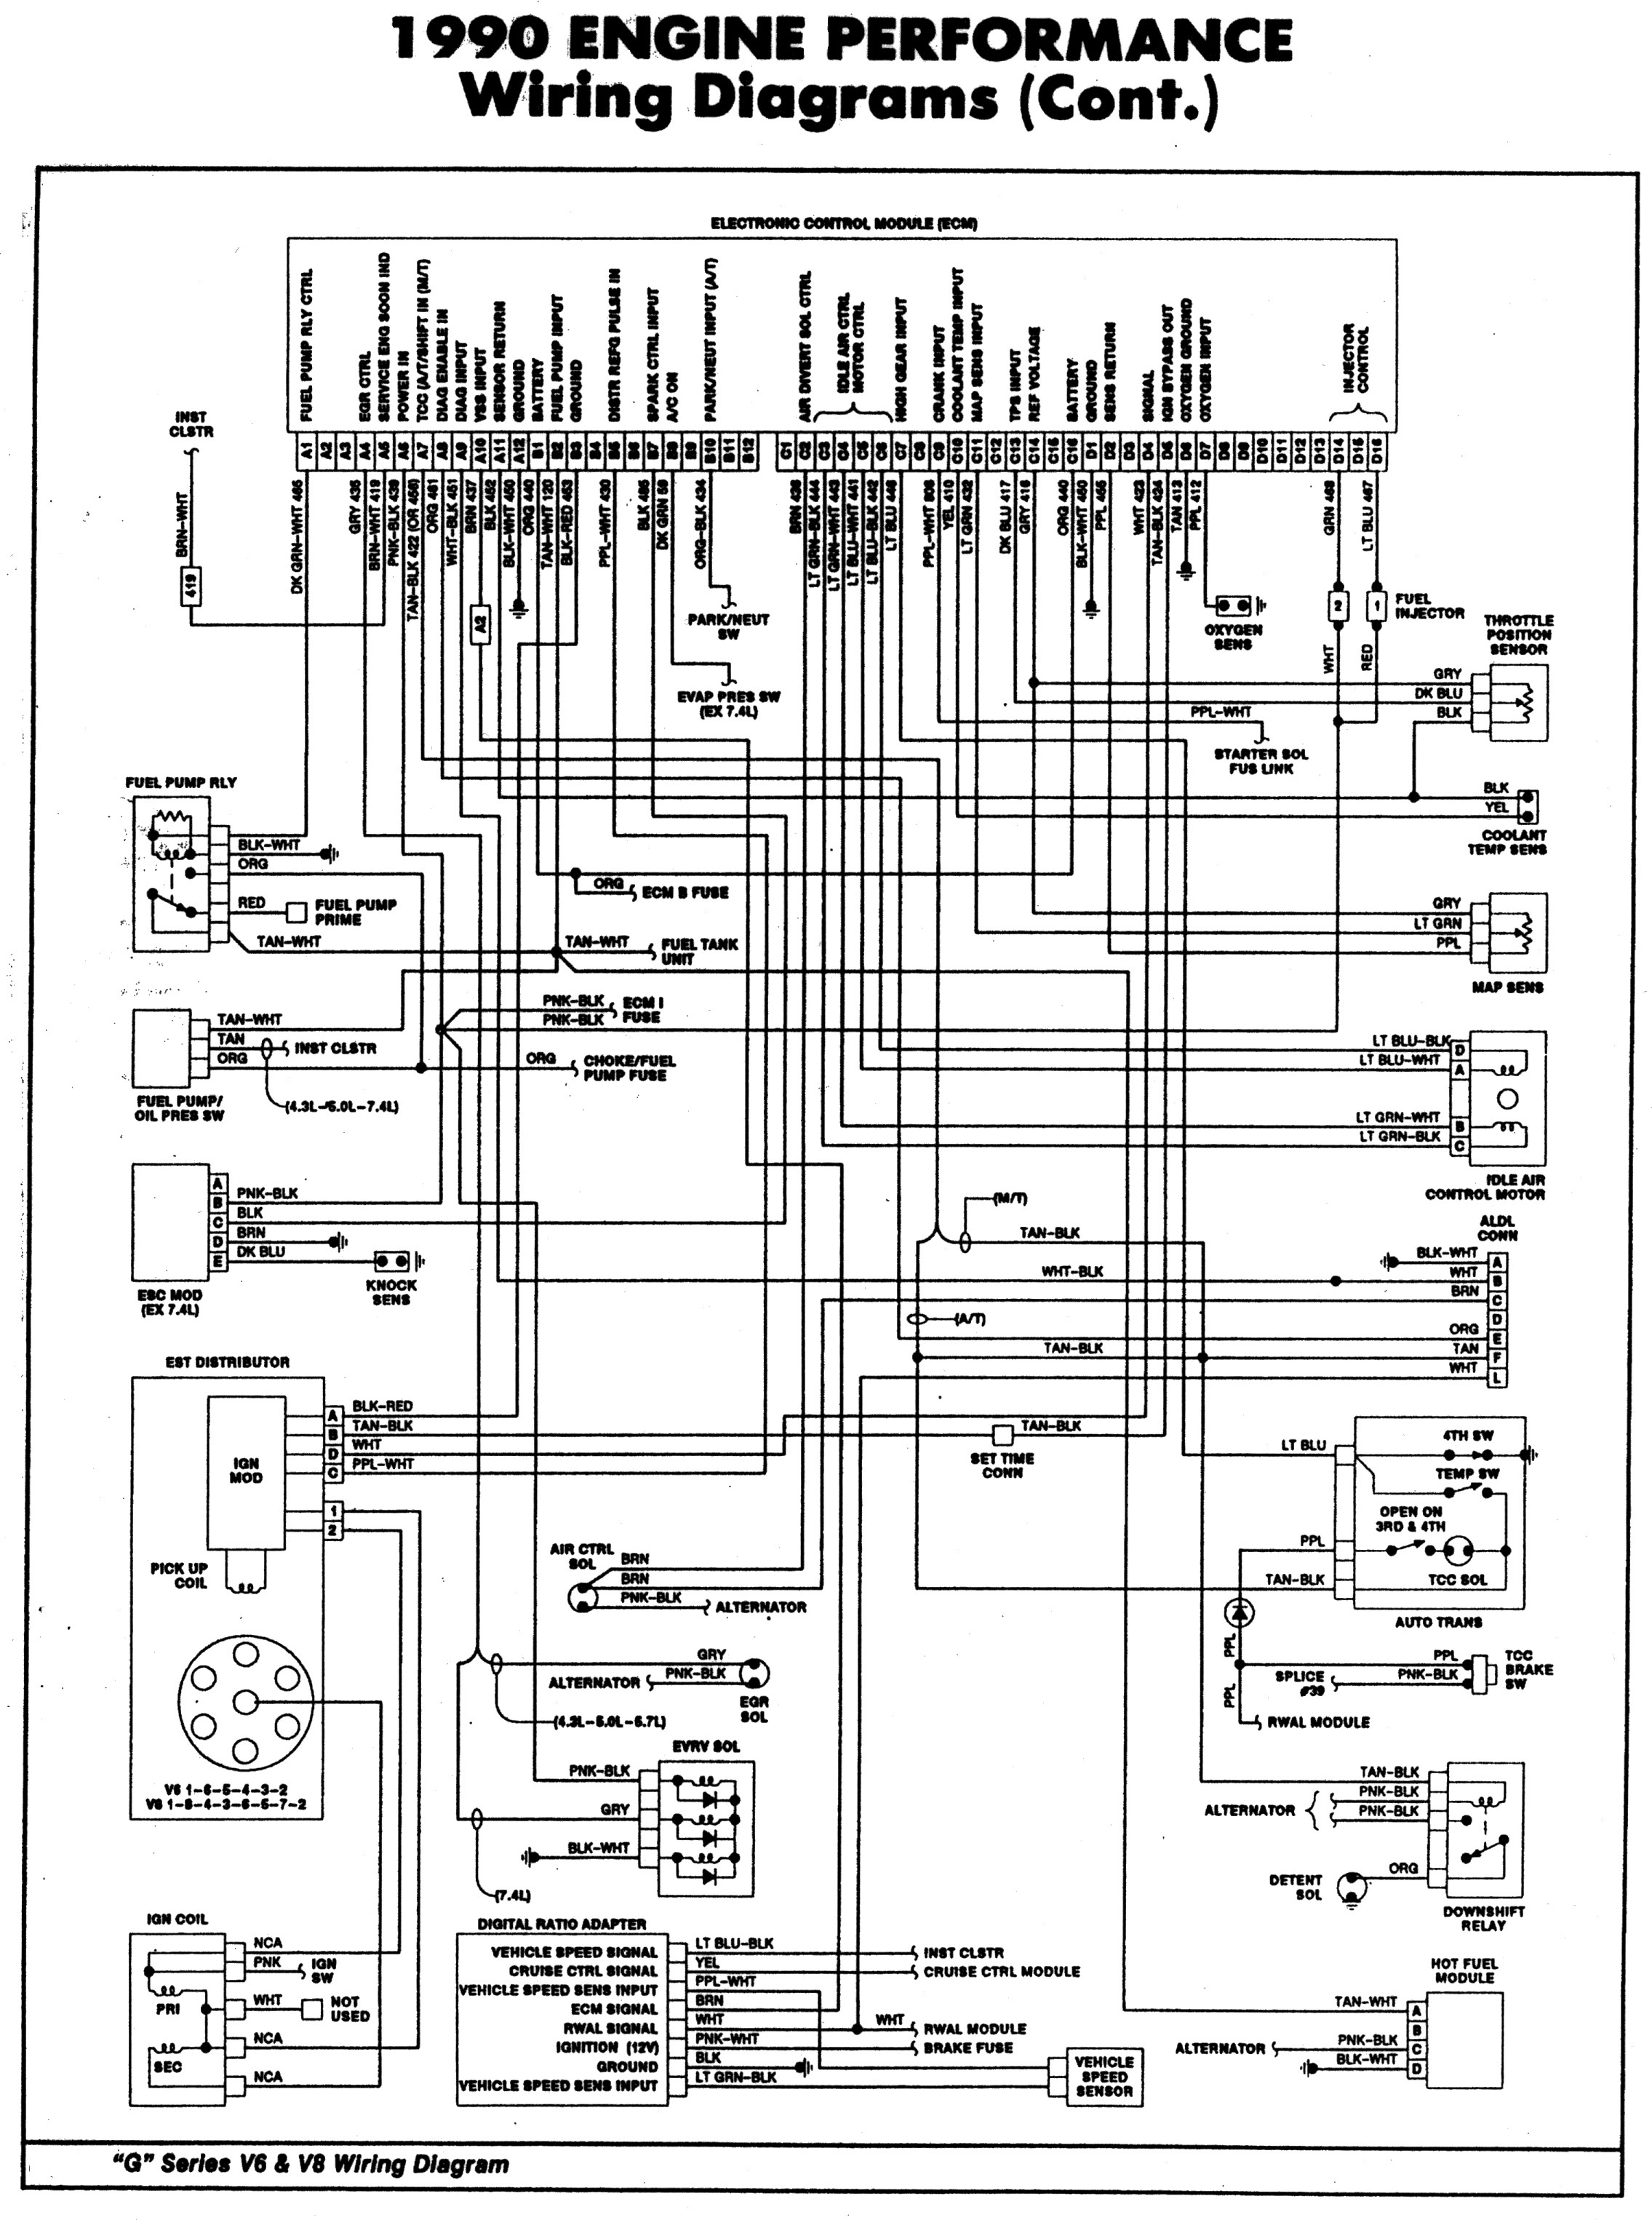 small resolution of 1990 chevy van wiring diagram wiring diagrams value 1990 g20 chevy van wiring diagrams